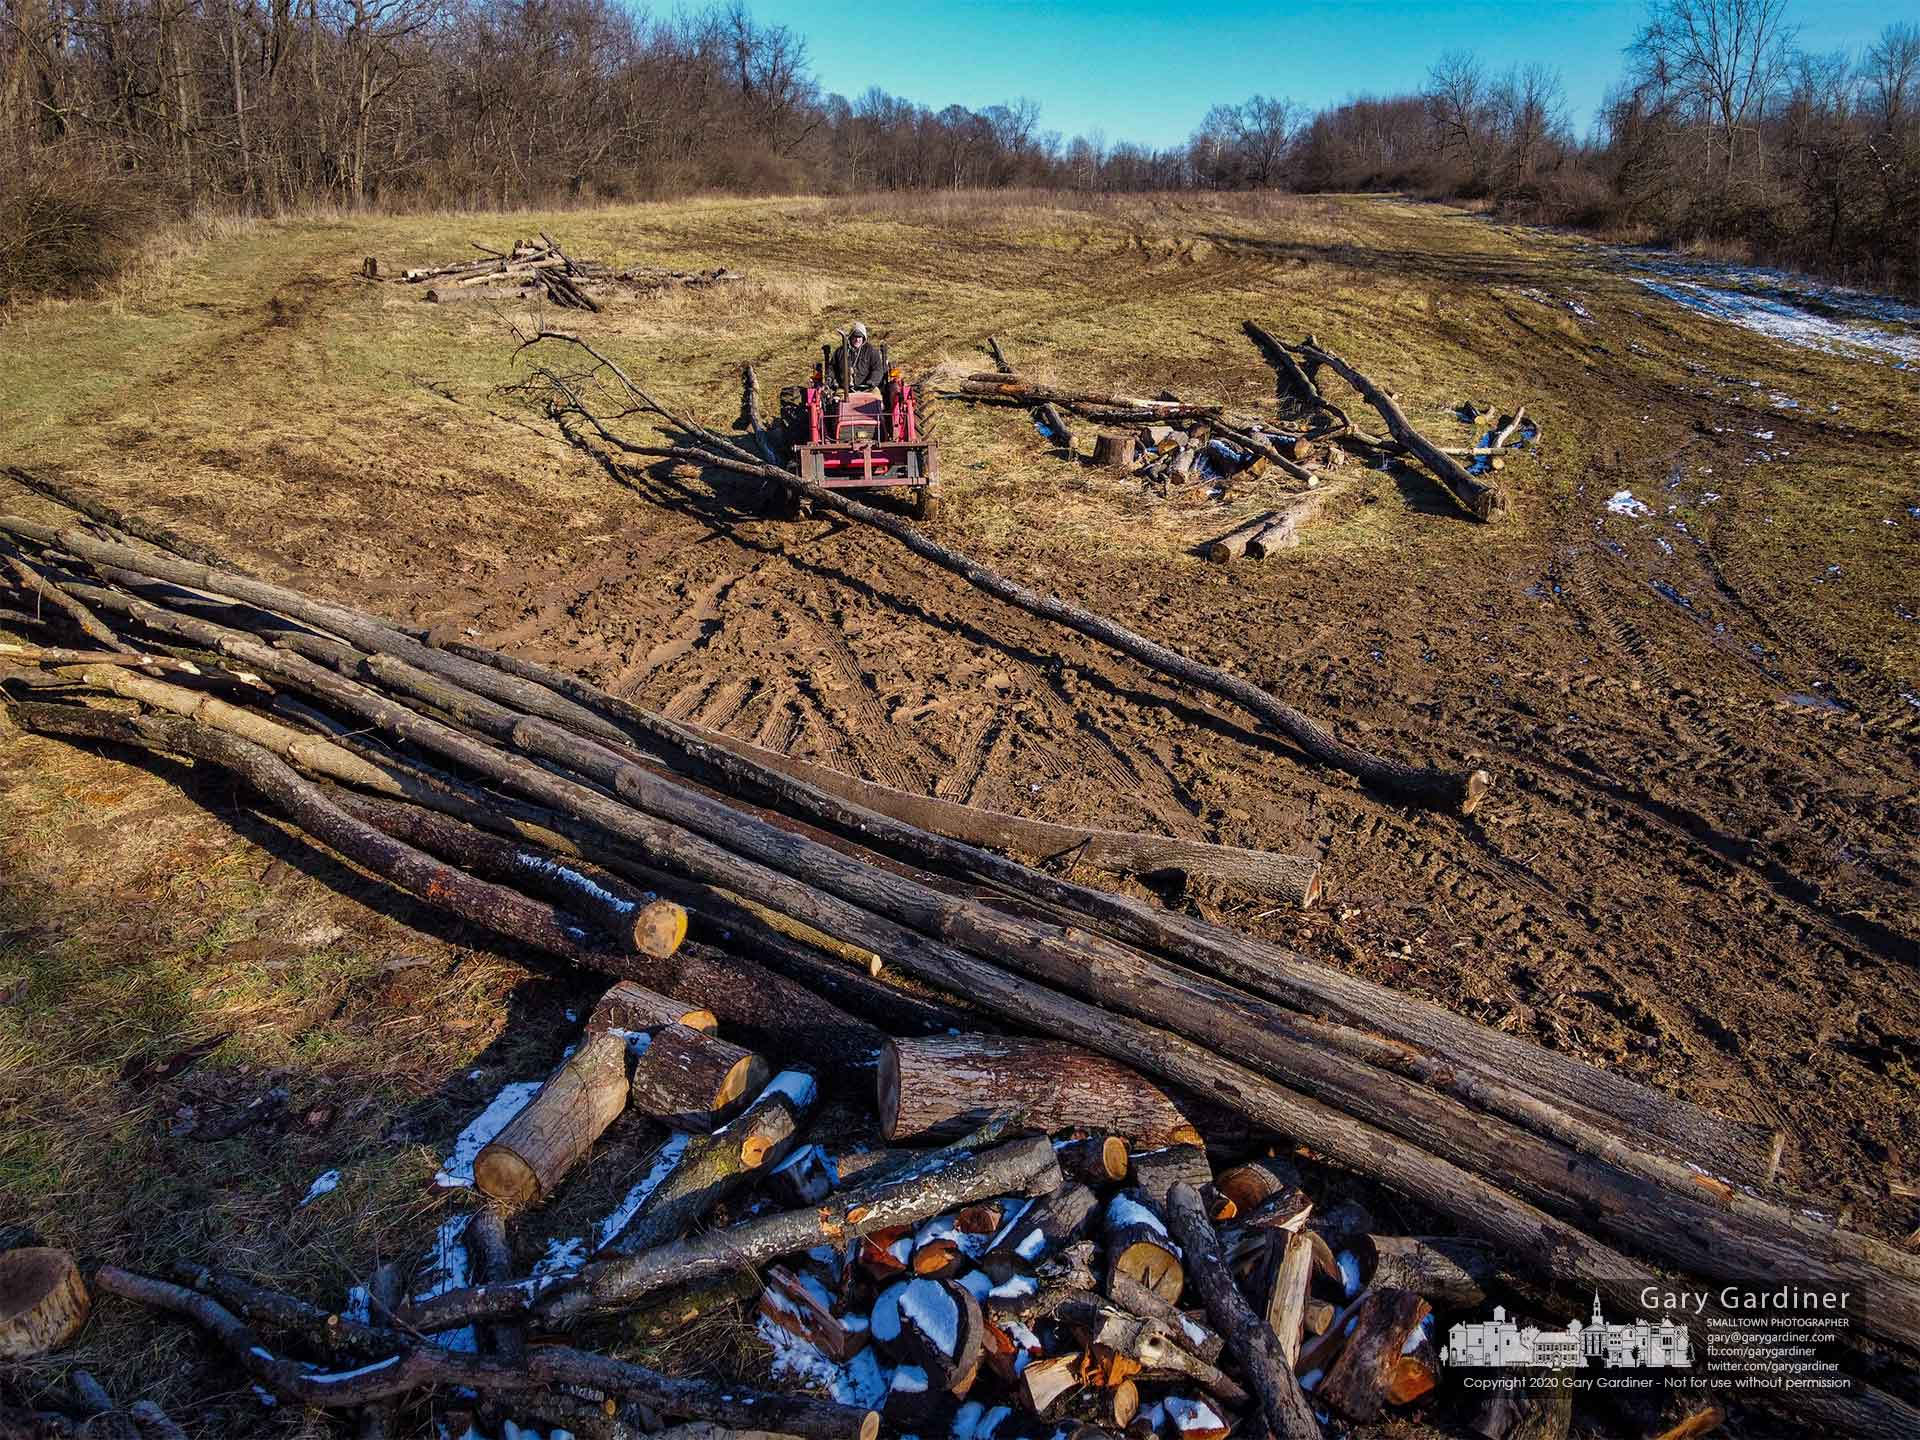 Kevin Scott hauls felled trees to a collection point as he helps clear trees from land that will be planted with crops in the spring. My Final Photo for Jan. 19, 2021.